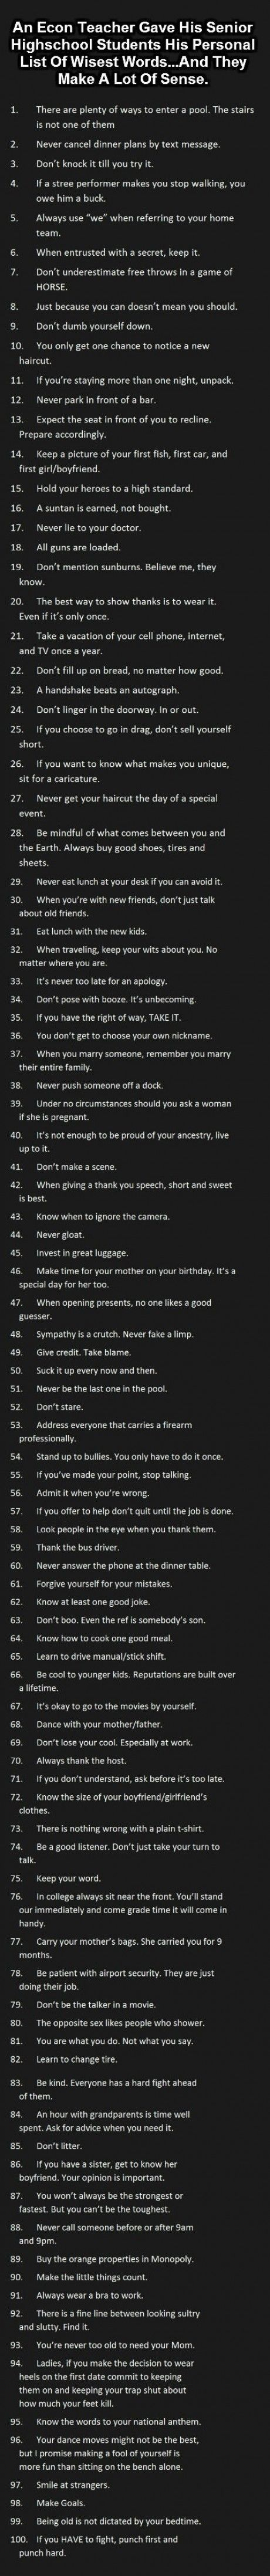 An econ teacher gave his senior high school students his personal list of wisest words....and they make a lot of sense.